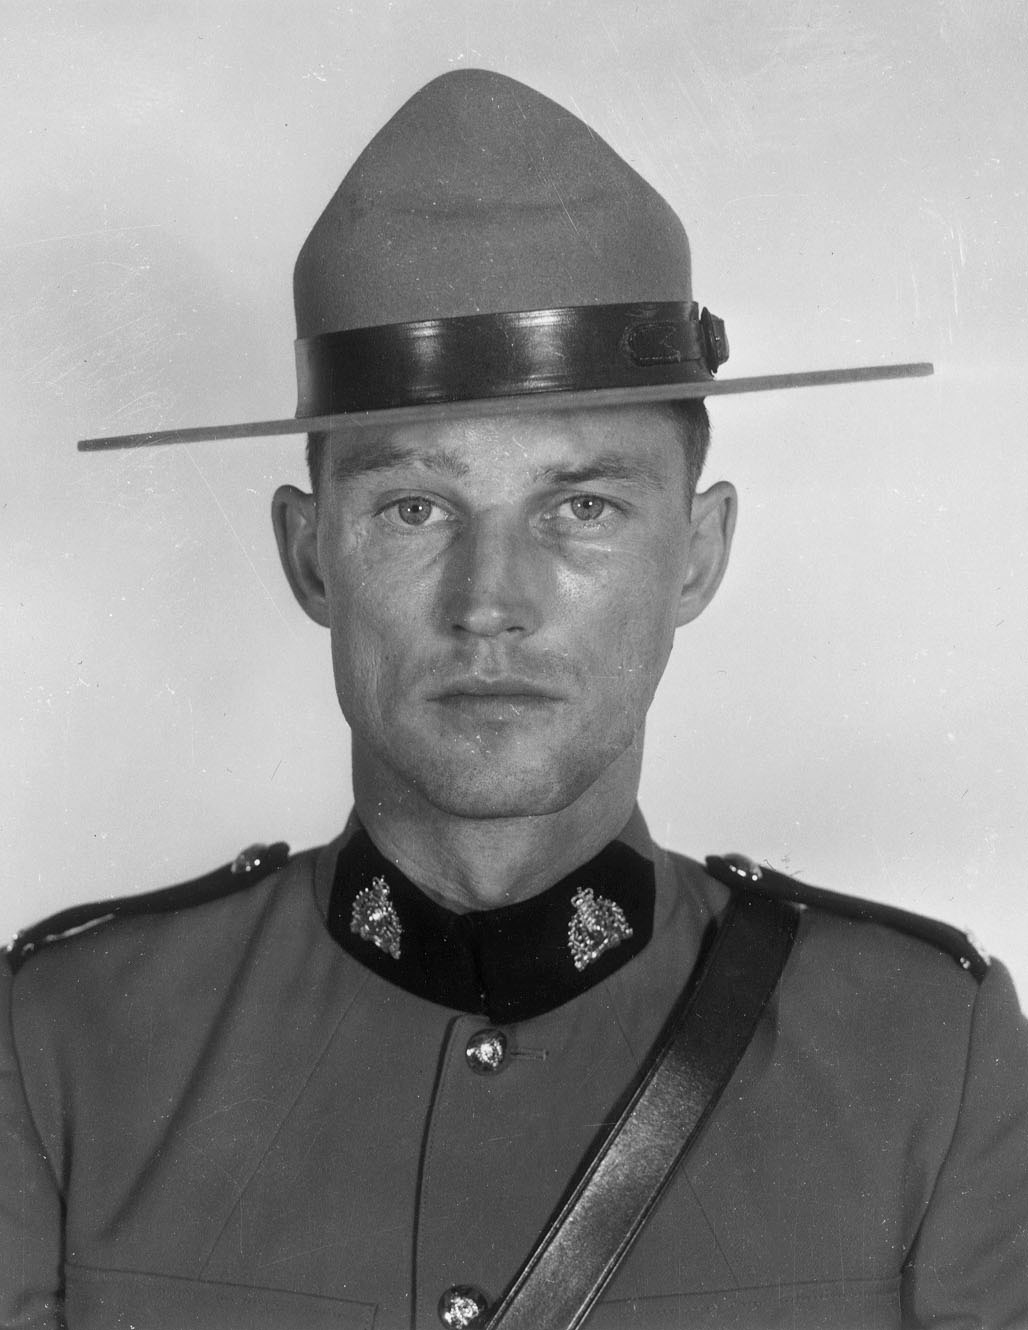 Constable Douglas Bernard Anson– © Her Majesty the Queen in Right of Canada as represented by the Royal Canadian Mounted Police